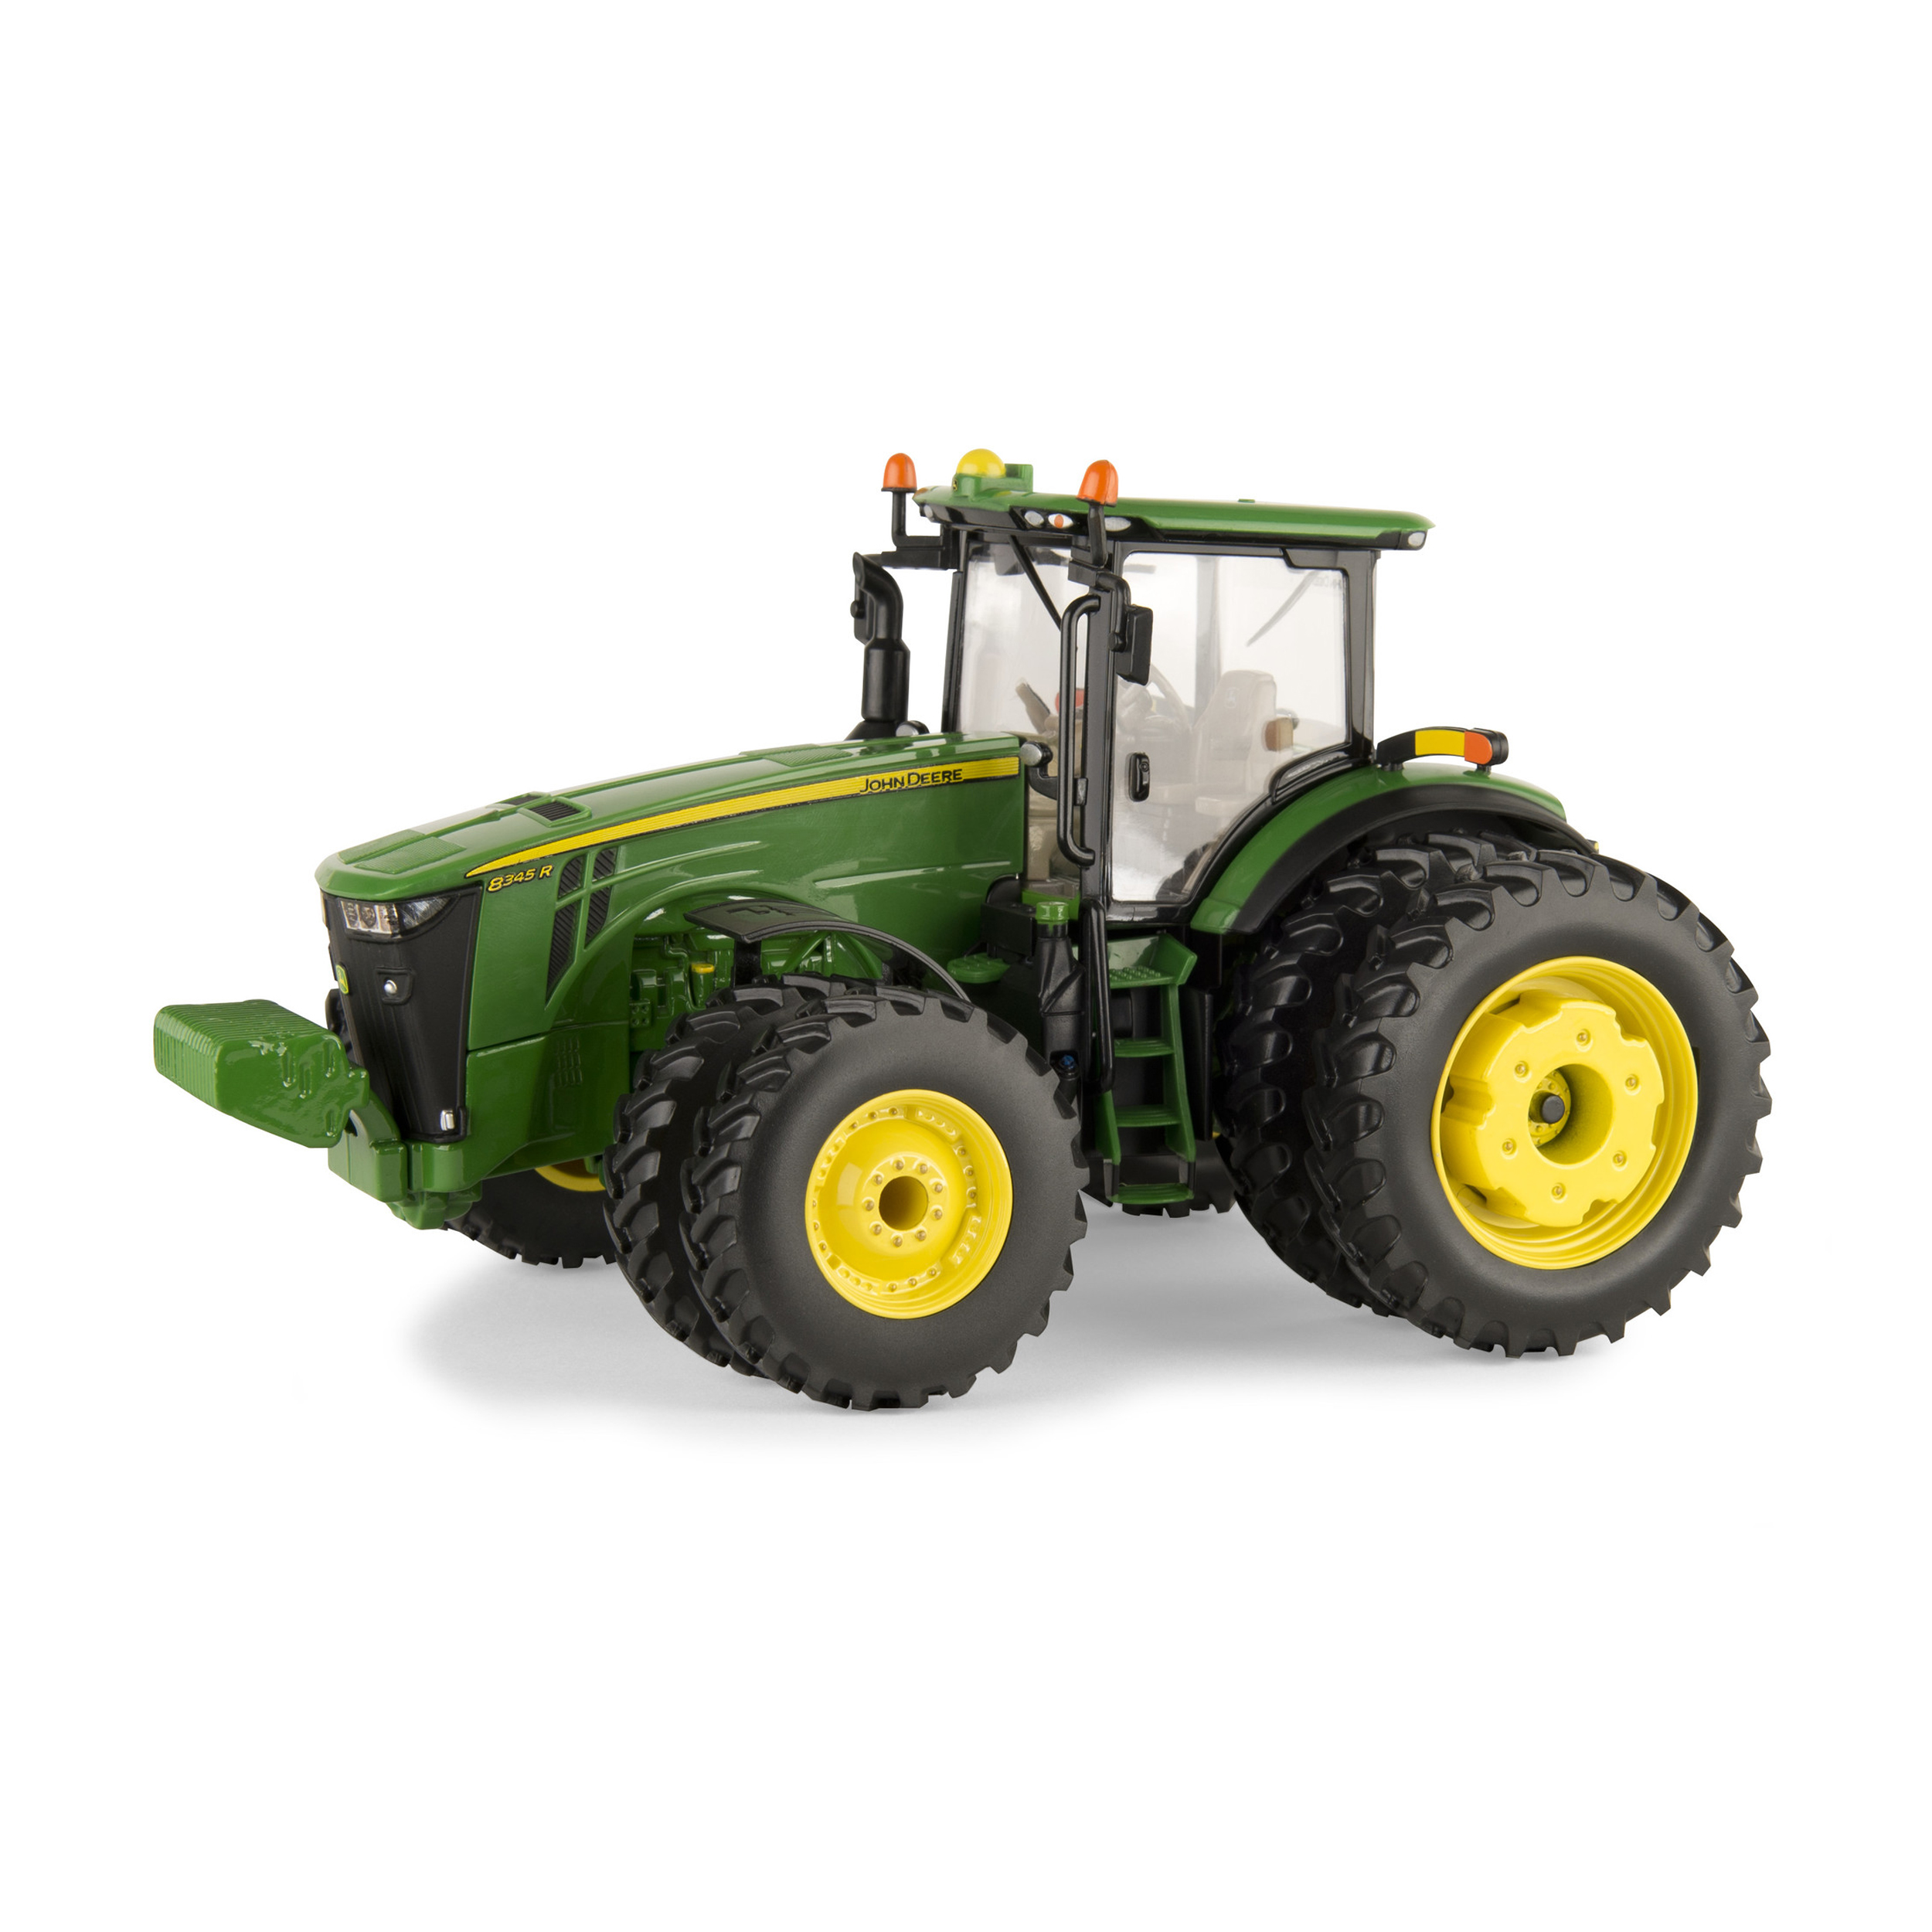 John Deere 8345R Tractor from the Prestige Collection